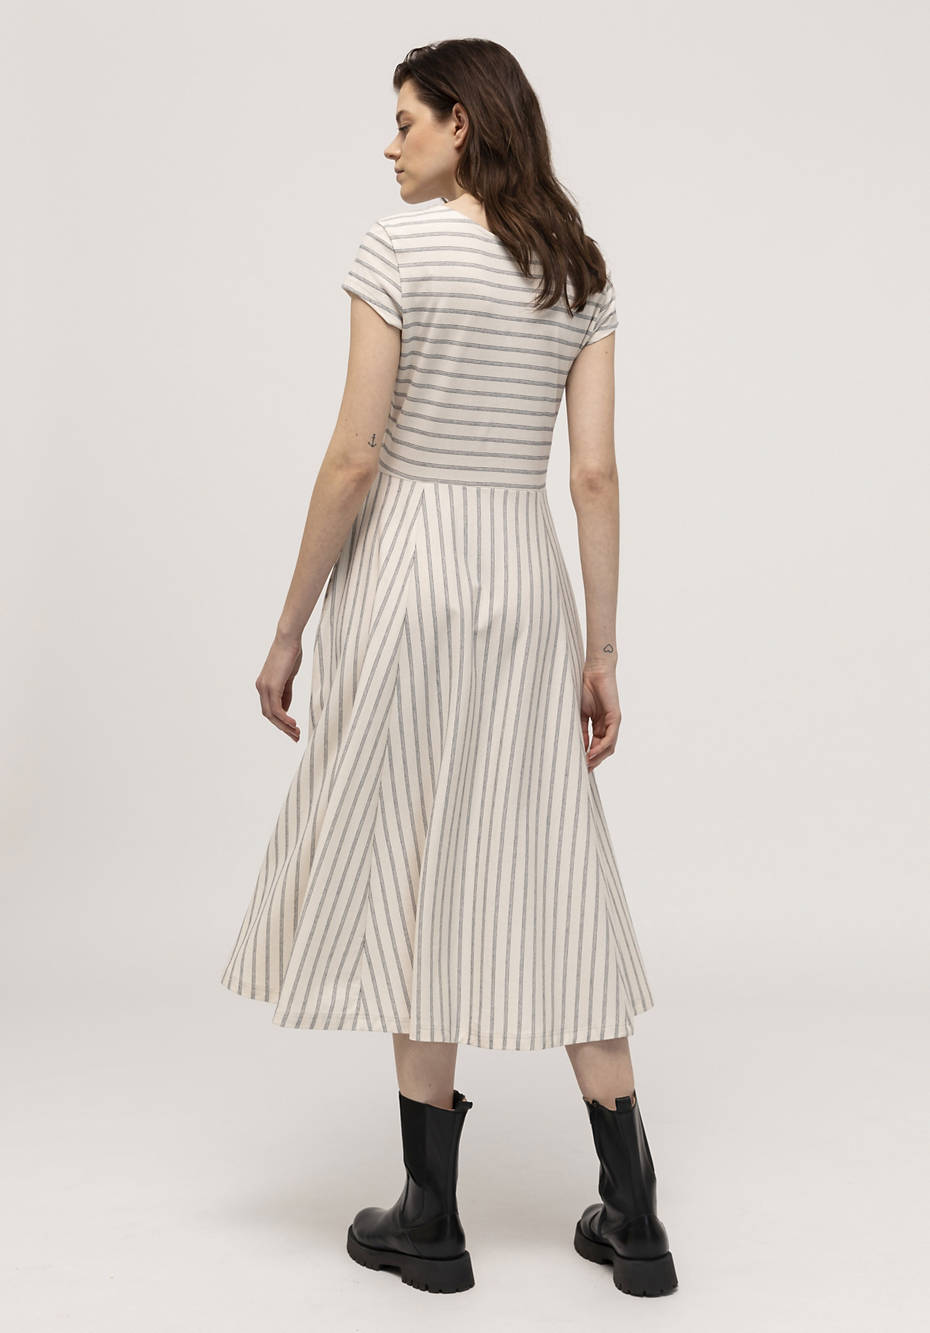 Jersey dress made from pure organic cotton